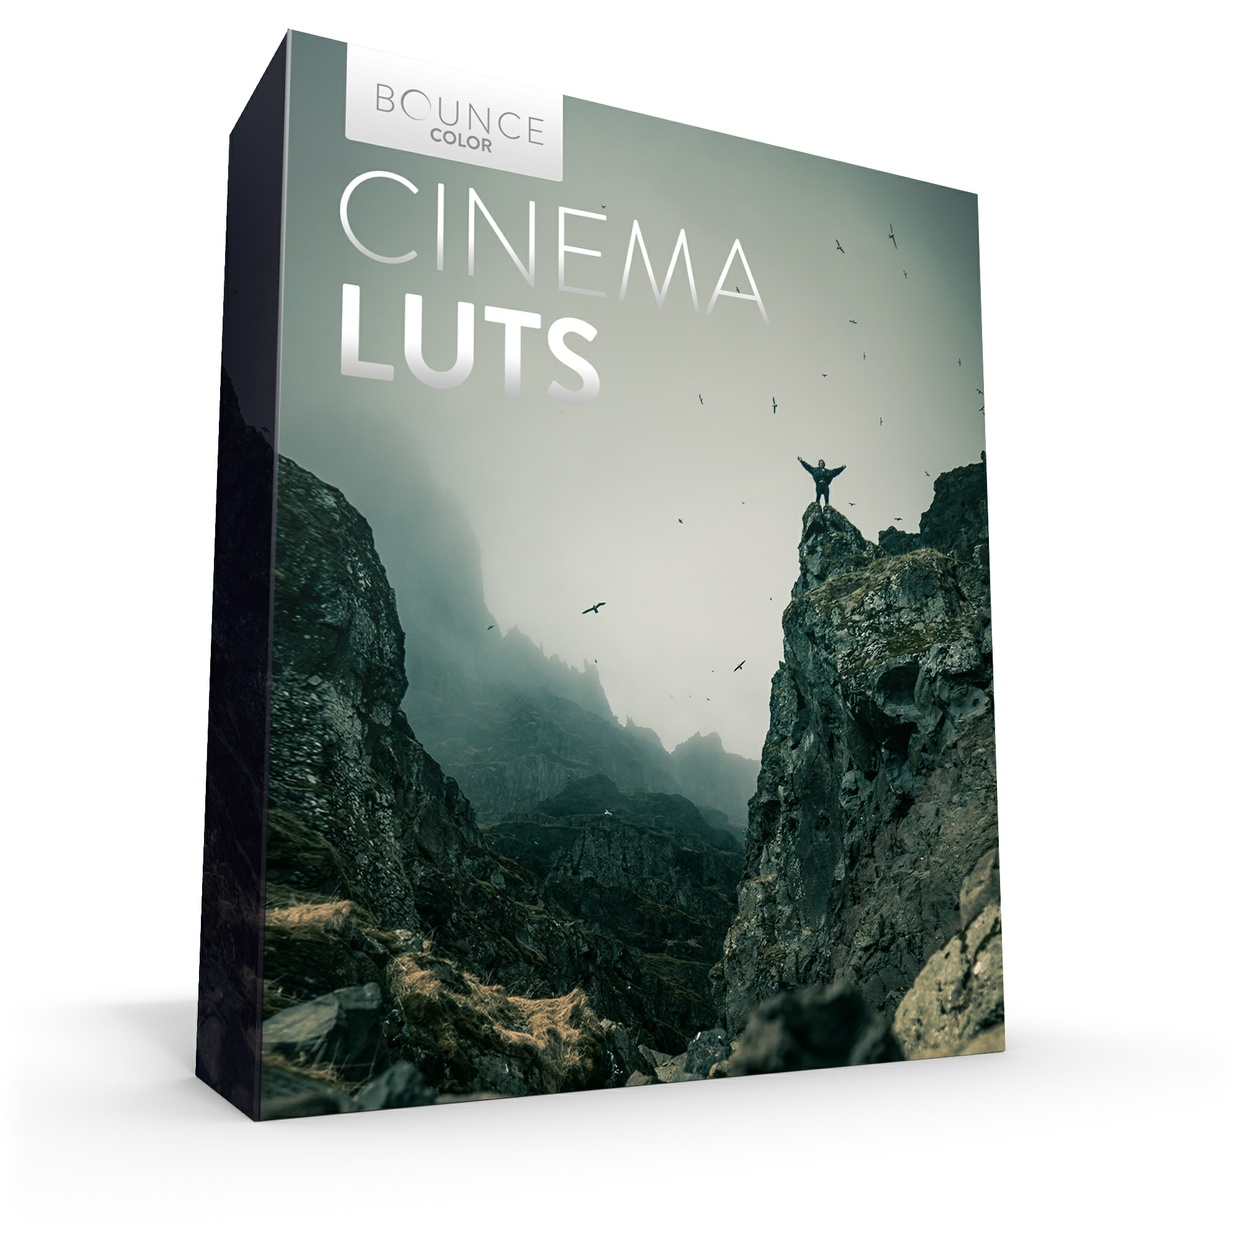 10 x POWERFUL CINEMATIC LUTs